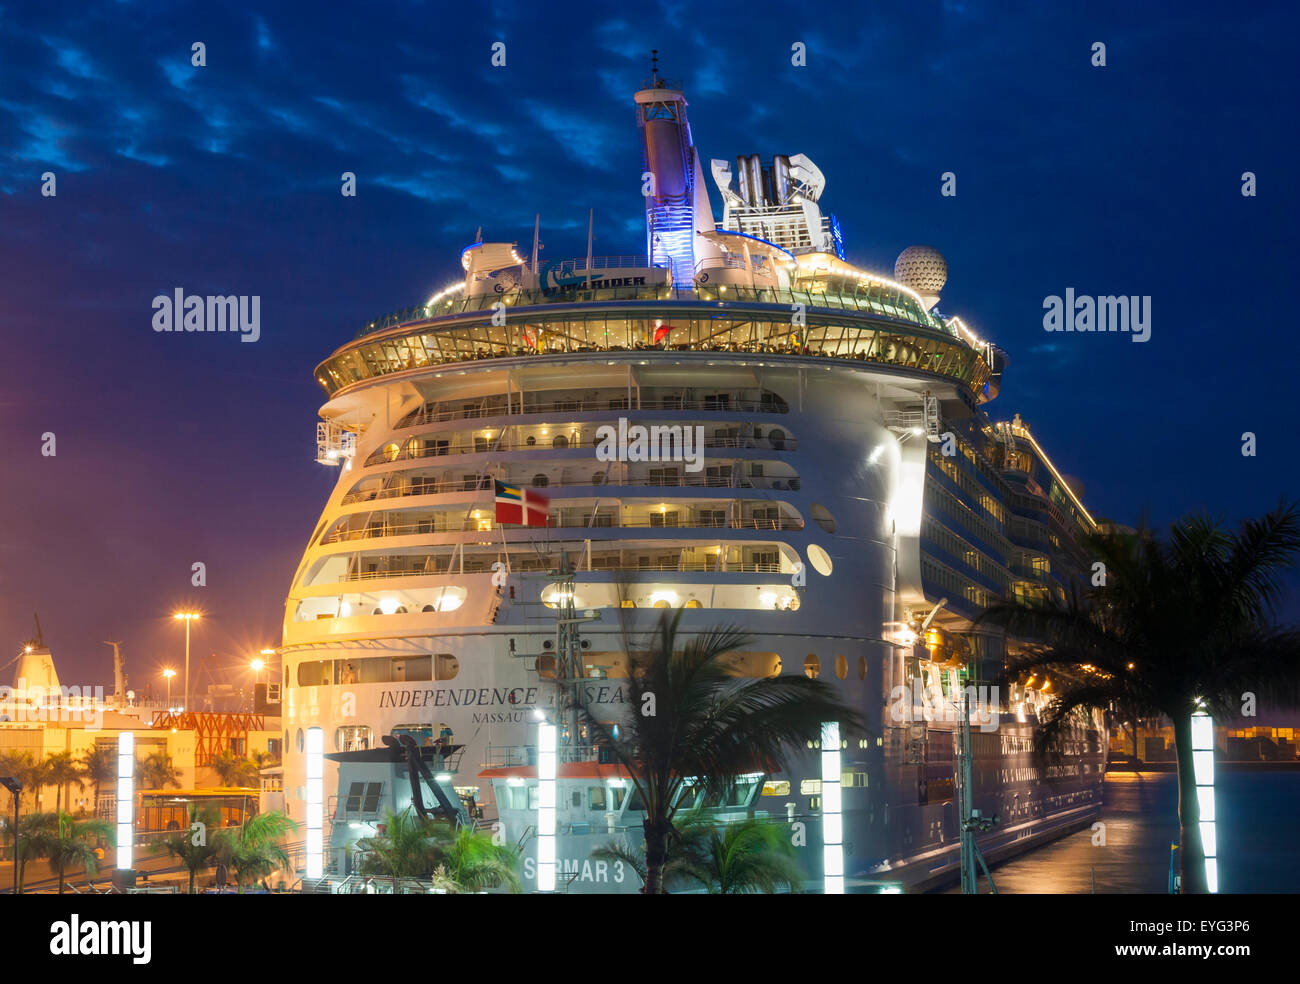 Cruise ship independence of the seas in las palmas port gran stock photo royalty free image - Port of las palmas gran canaria ...